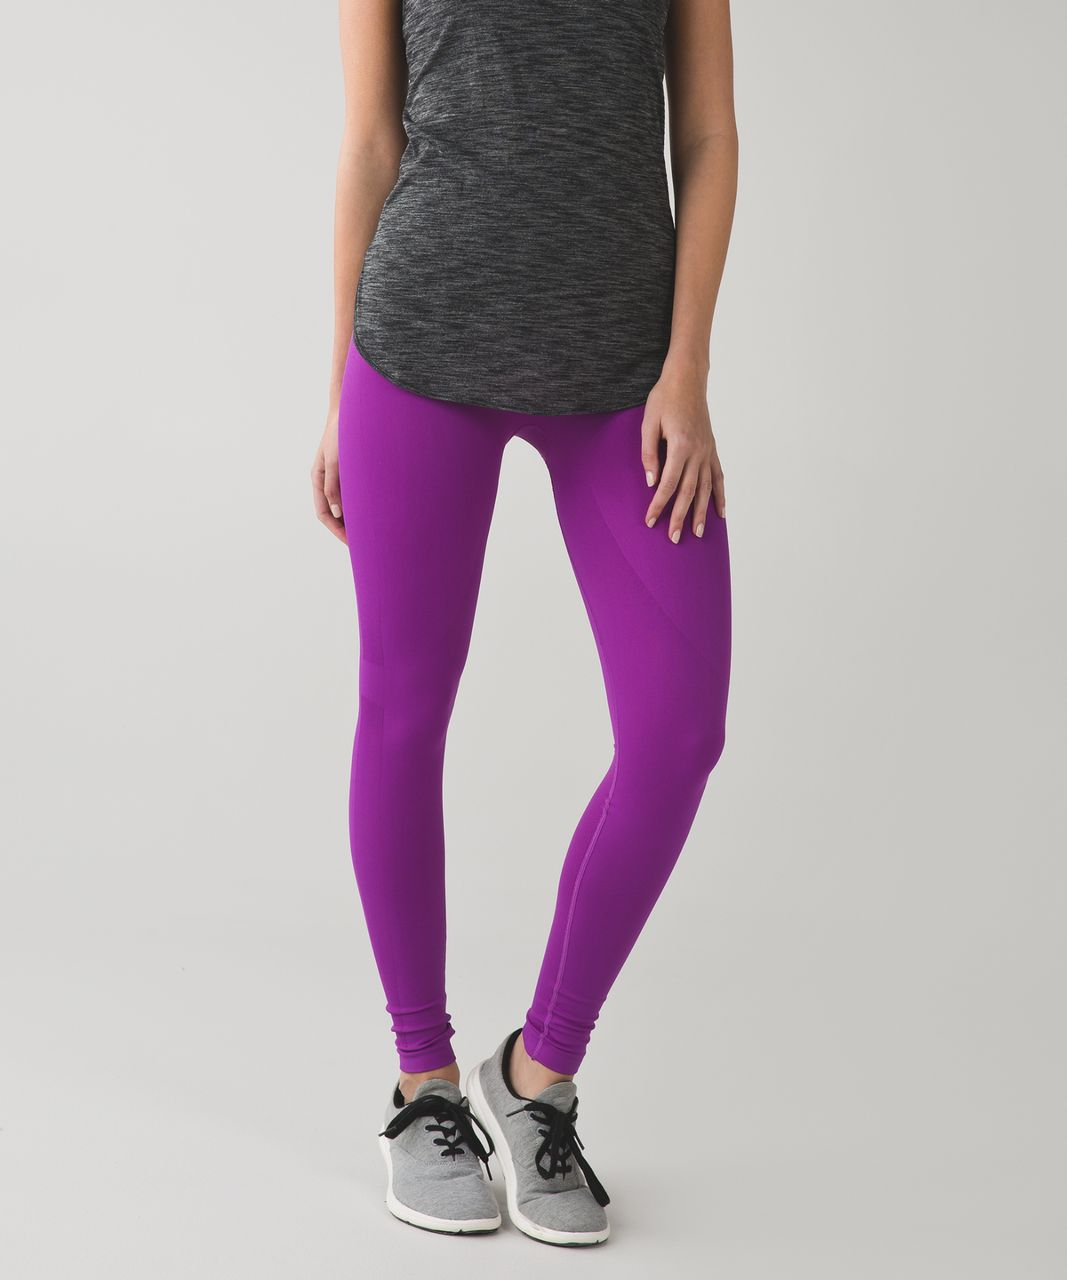 55904563d63f61 Lululemon Zone In Tight - Tender Violet - lulu fanatics